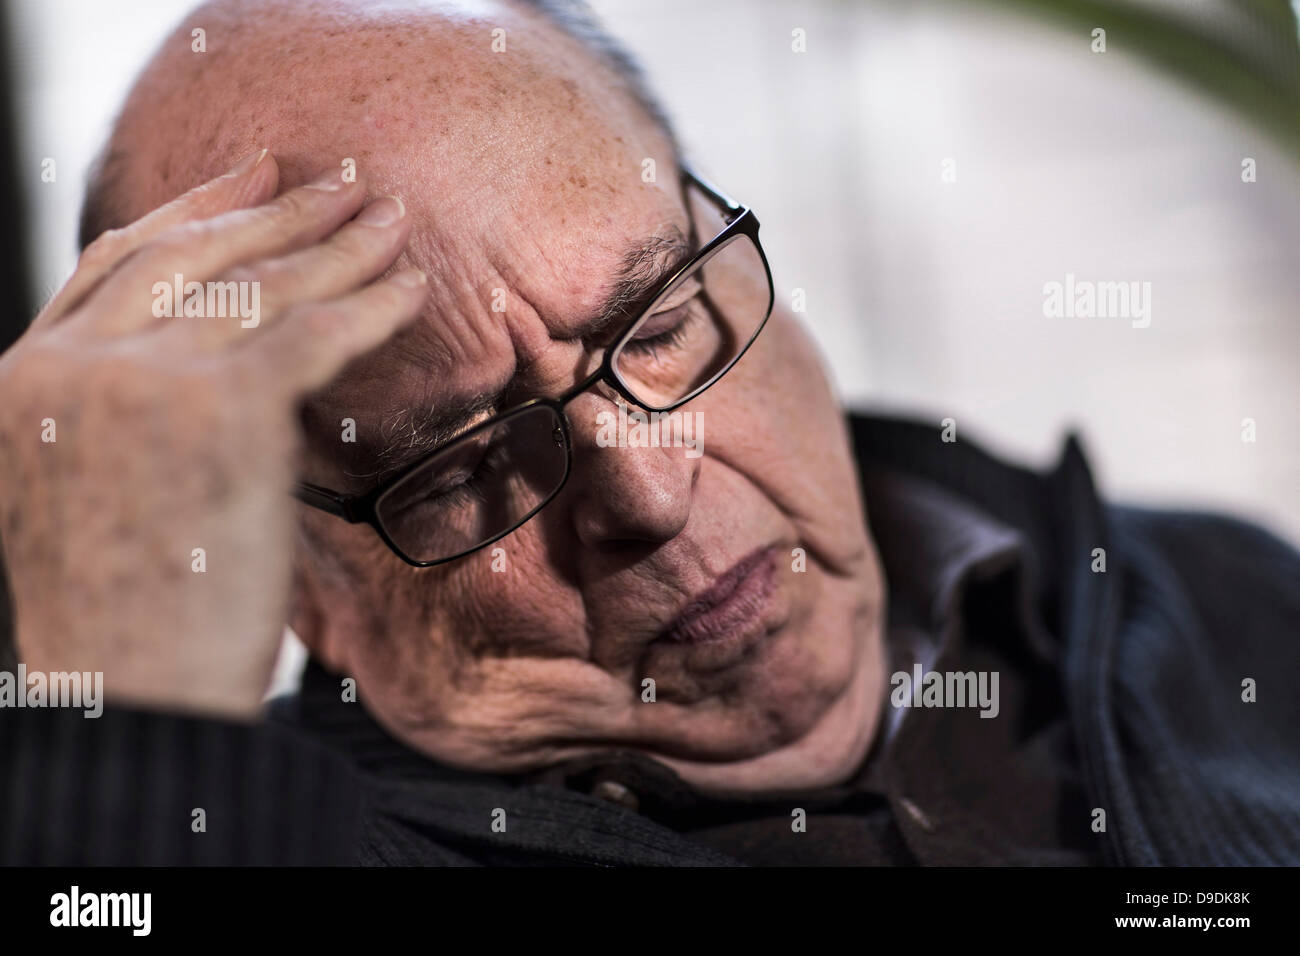 Senior man with eyes closed, wearing glasses, looking stressed - Stock Image